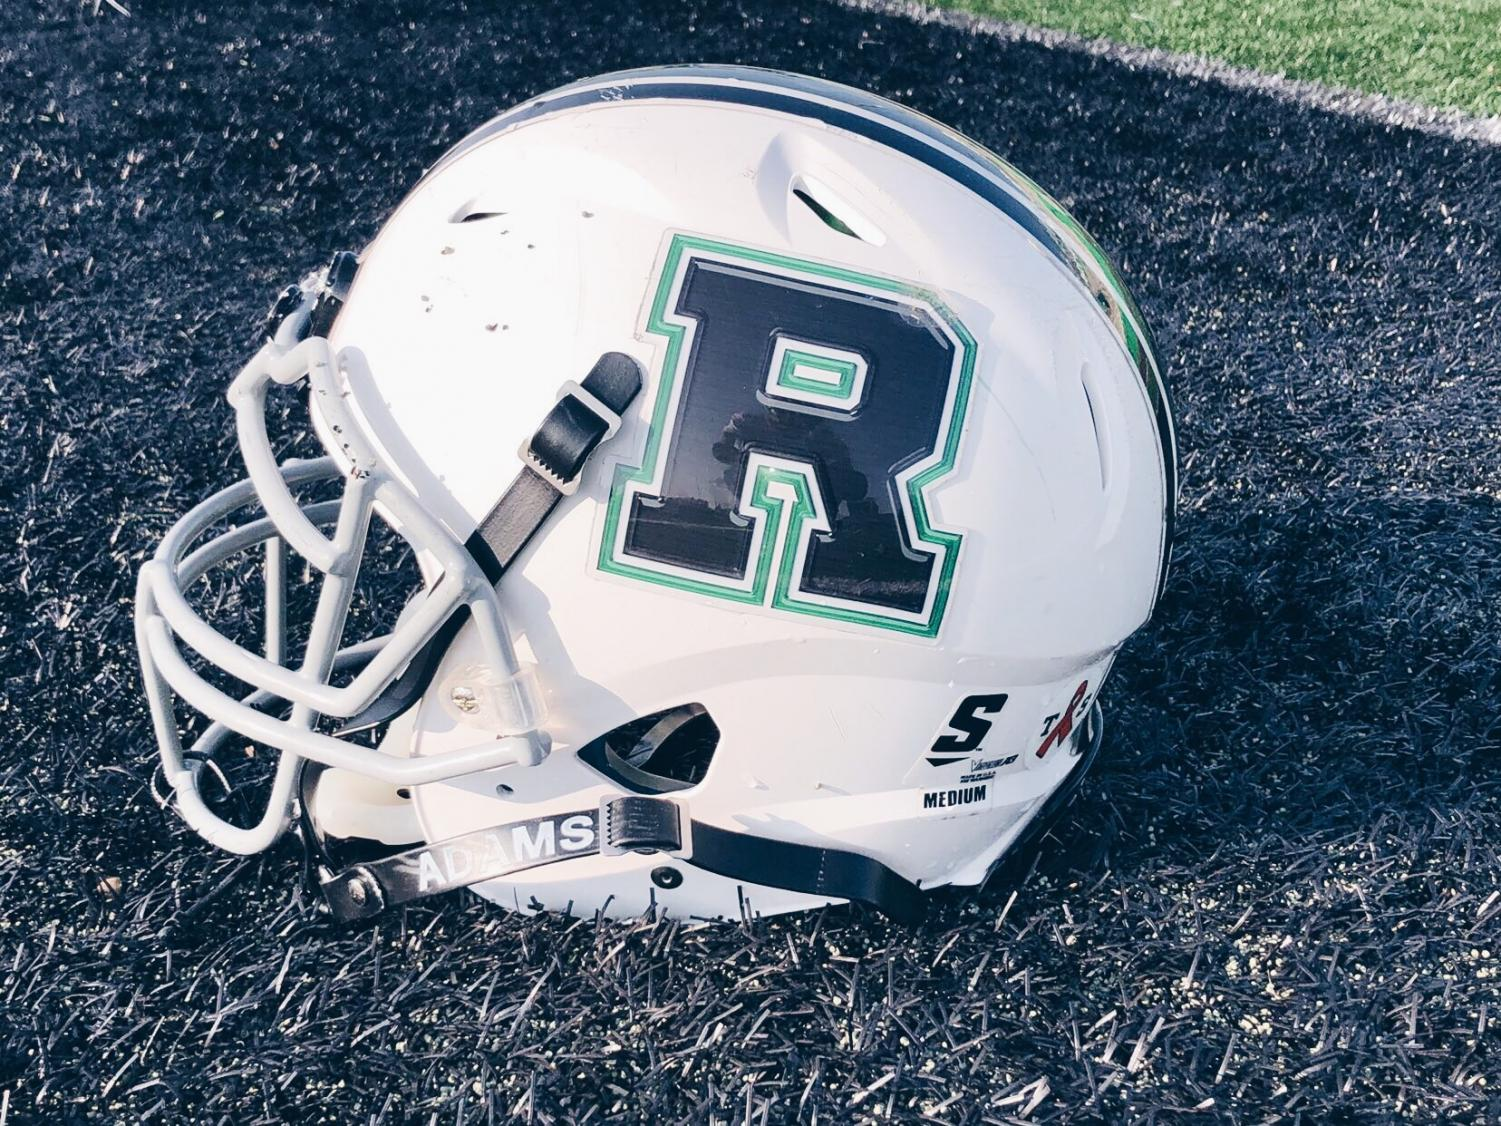 Roswell's football team is in great anticipation over college offers. Credit: Kennedy Walls